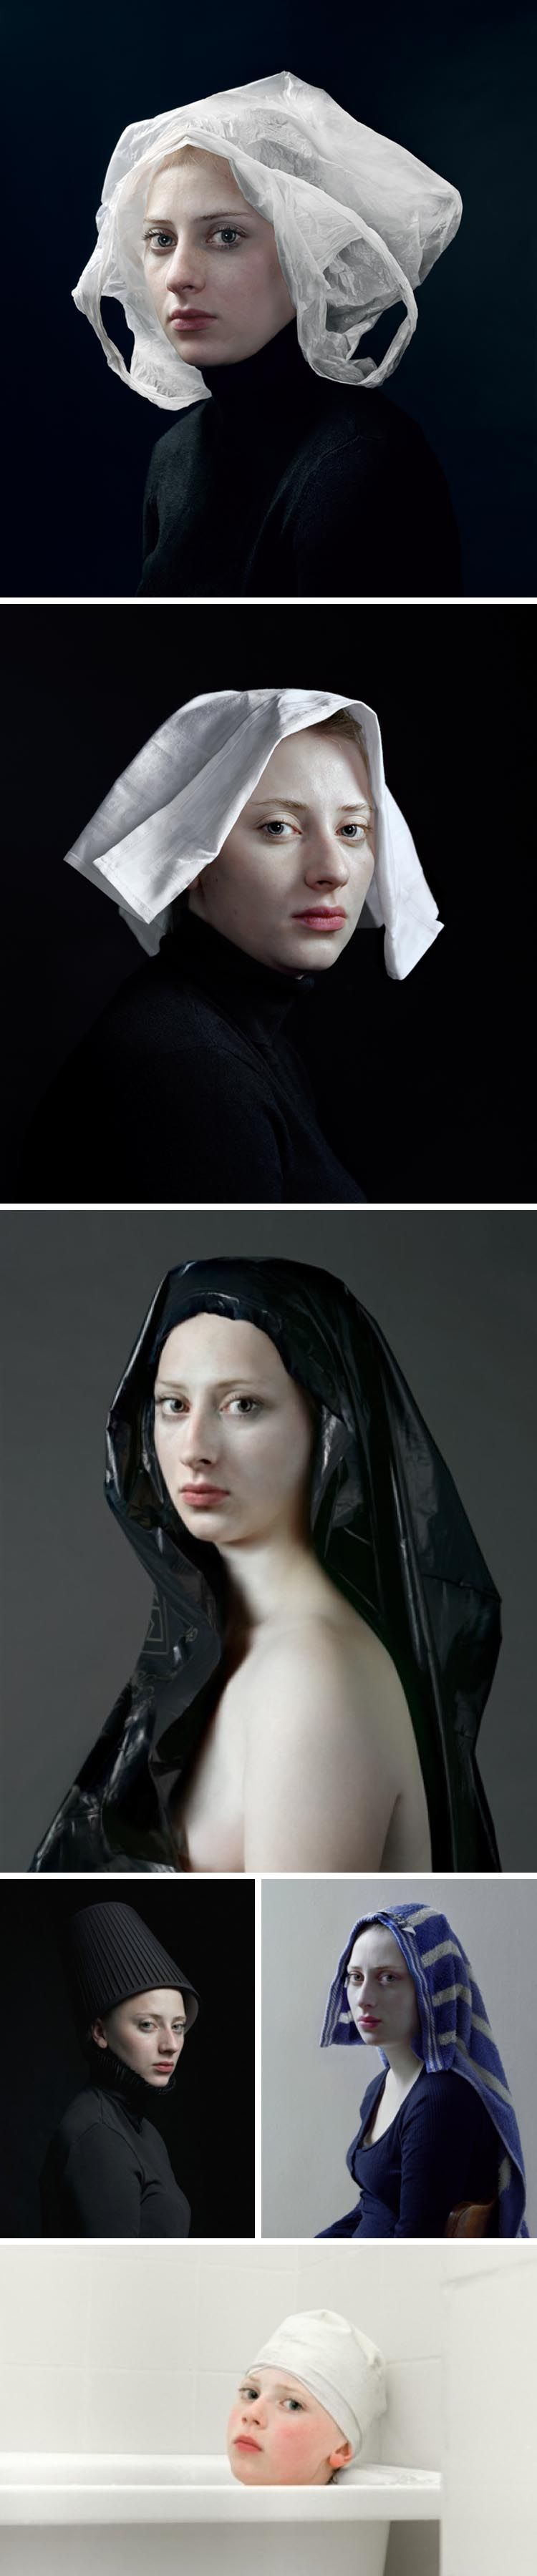 Hendrik Kerstens - Paula Pictures, Dutch Master style contemporary photographs with humorous headdresses